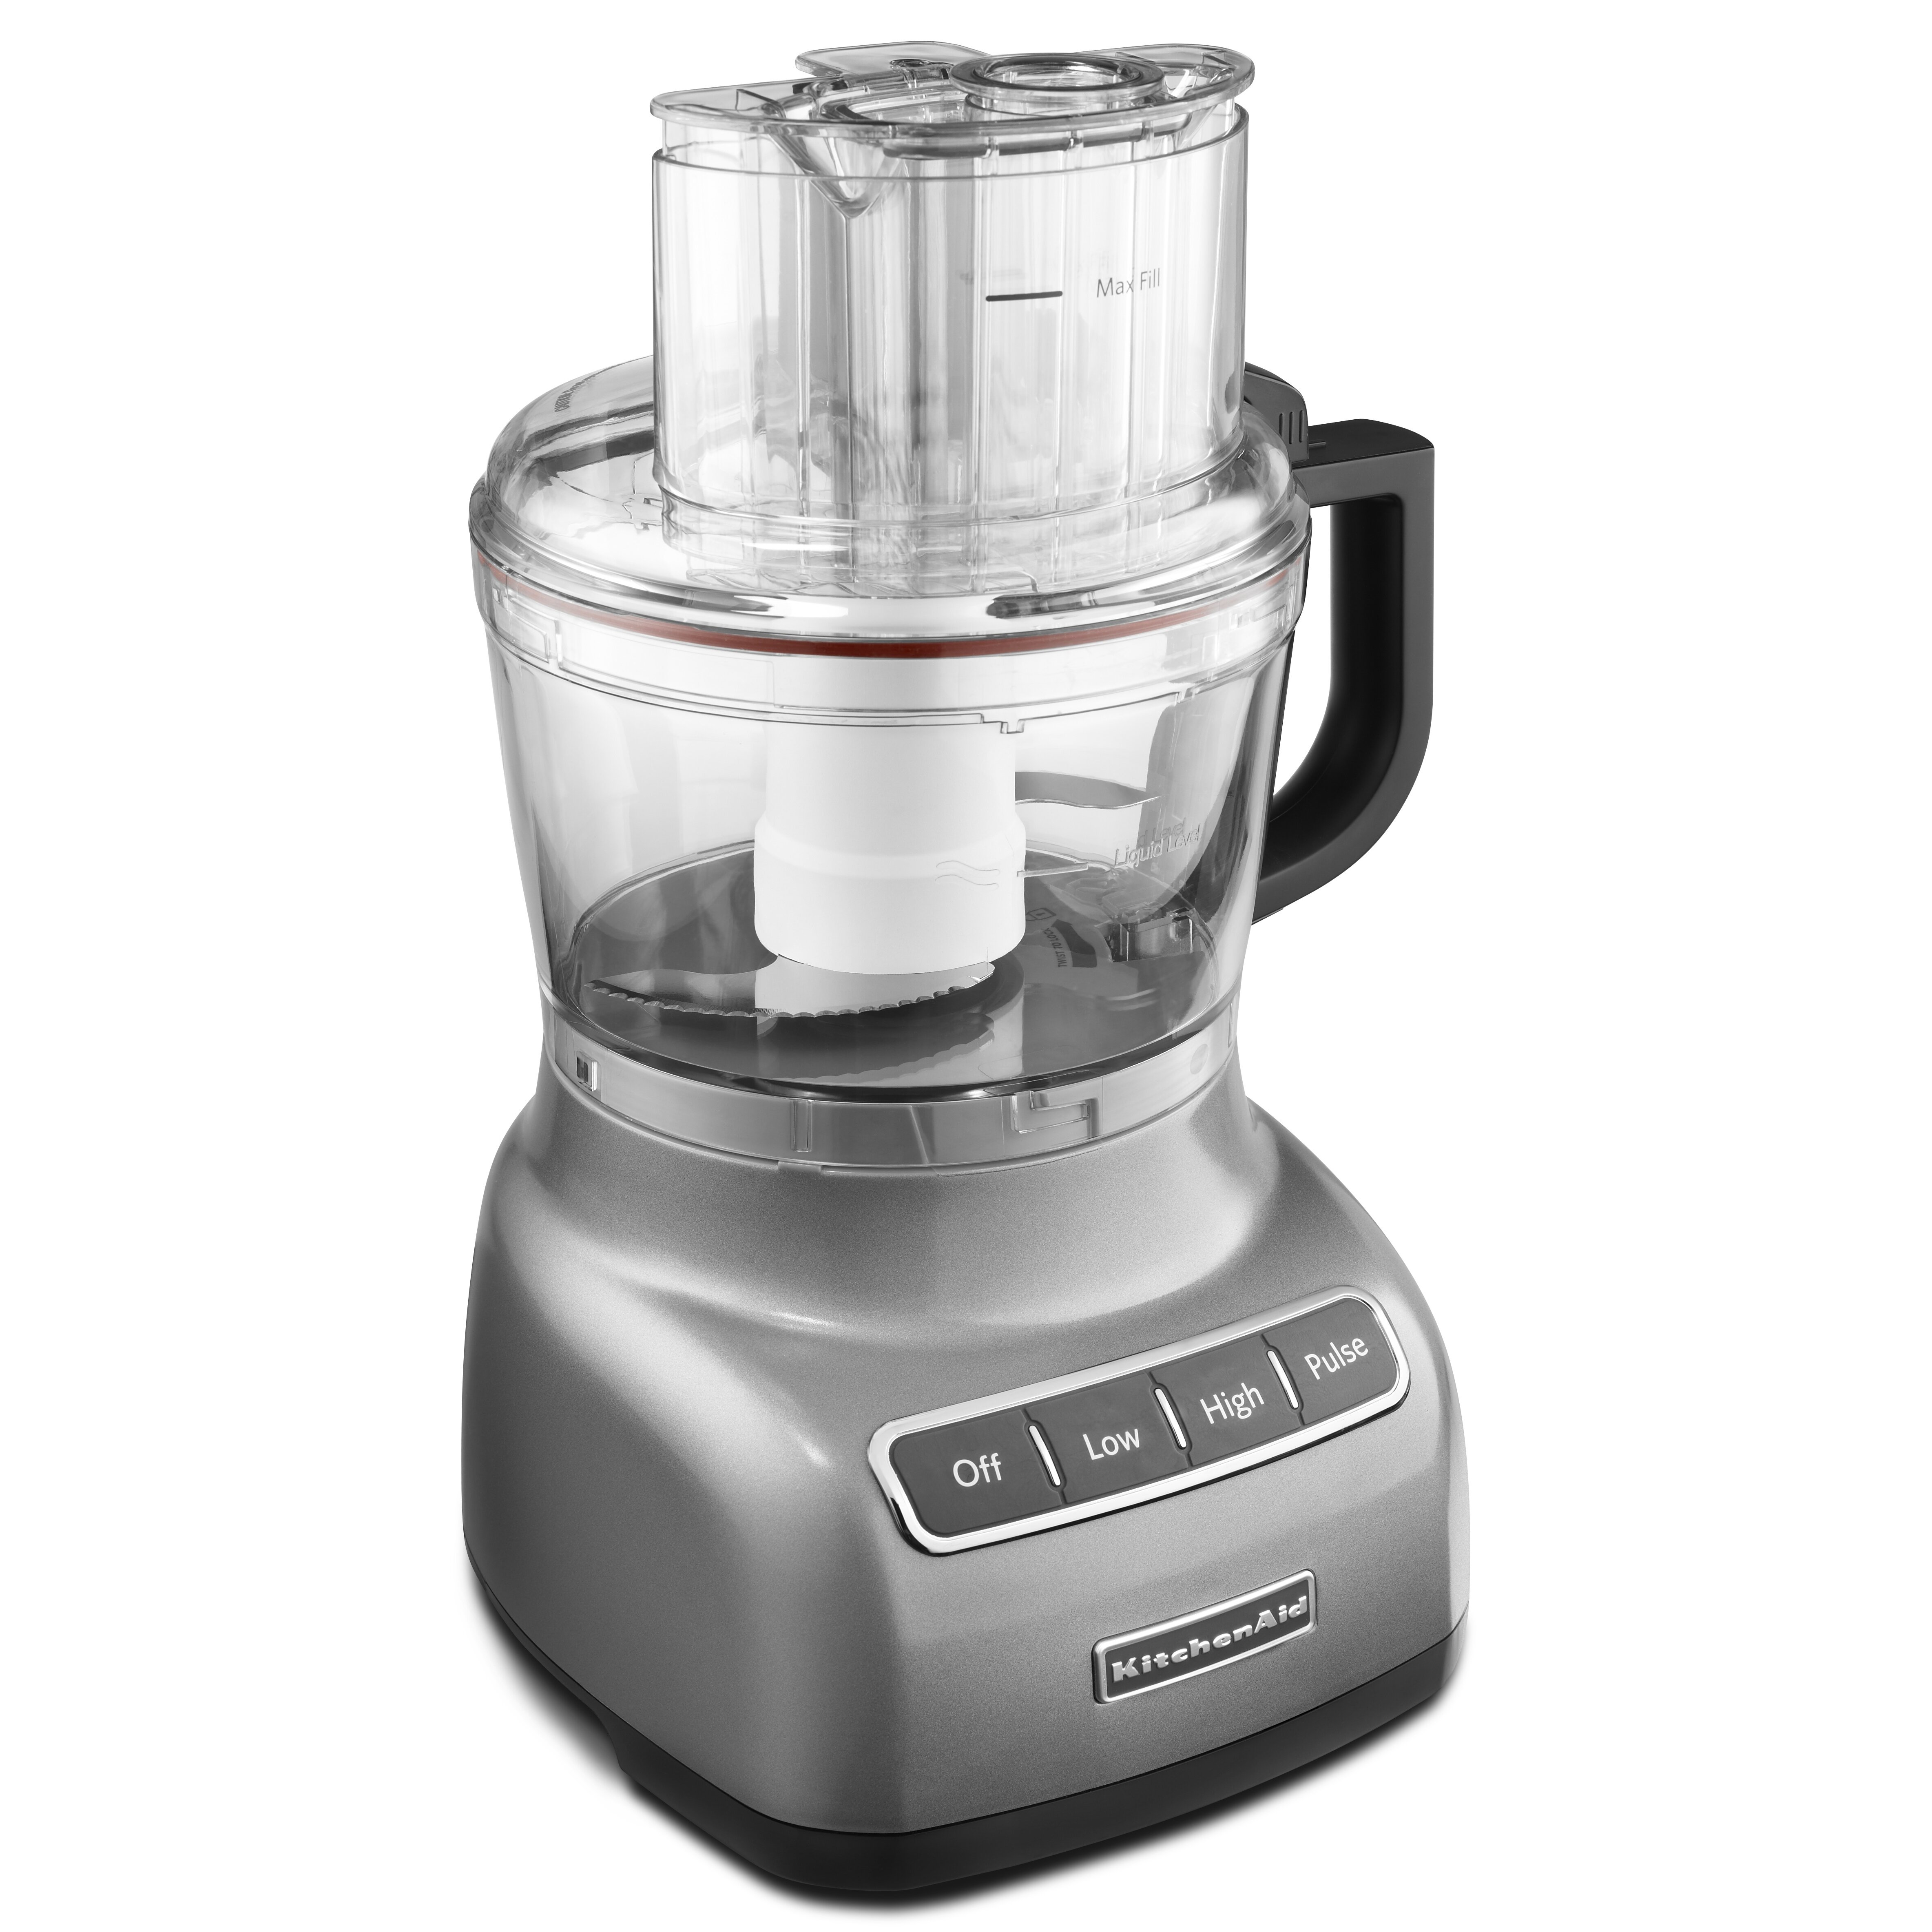 kitchenaid 9 cup exactslice food processor with julienne disc. kitchenaid 9 cup food processor with exactslice system kitchenaid exactslice julienne disc o